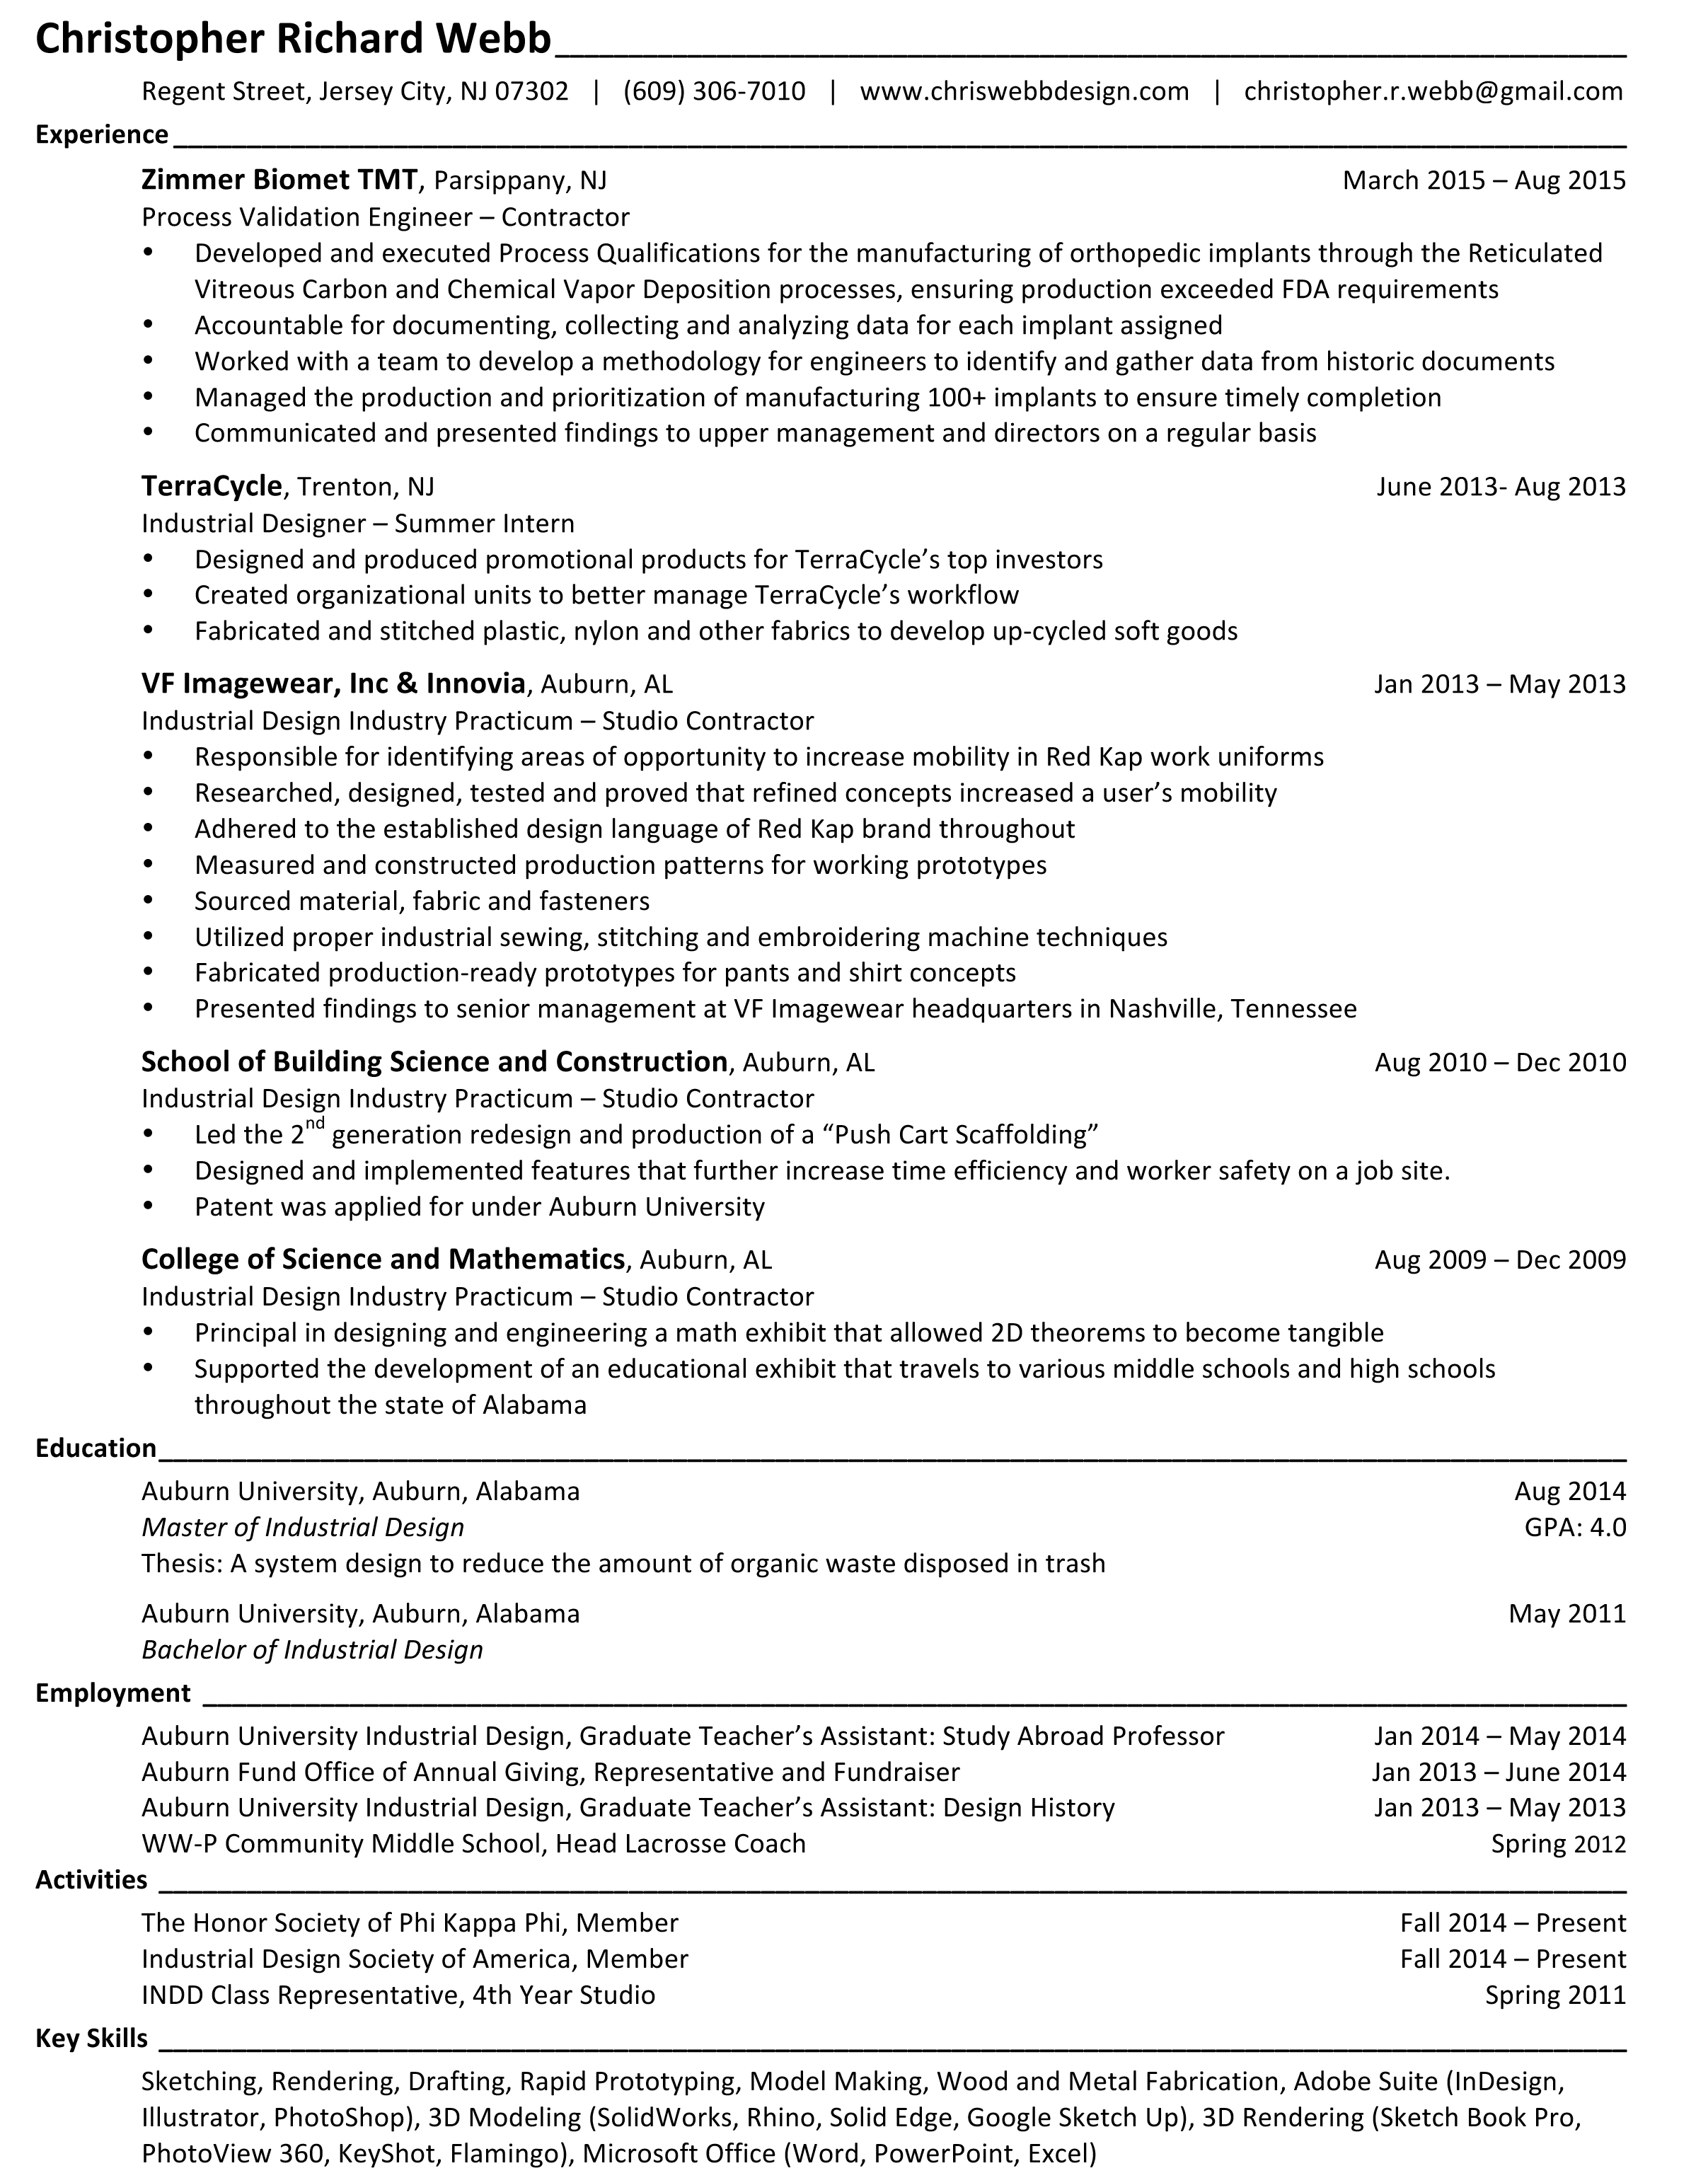 Microsoft Word - Webb, Christopher_Resume.docx